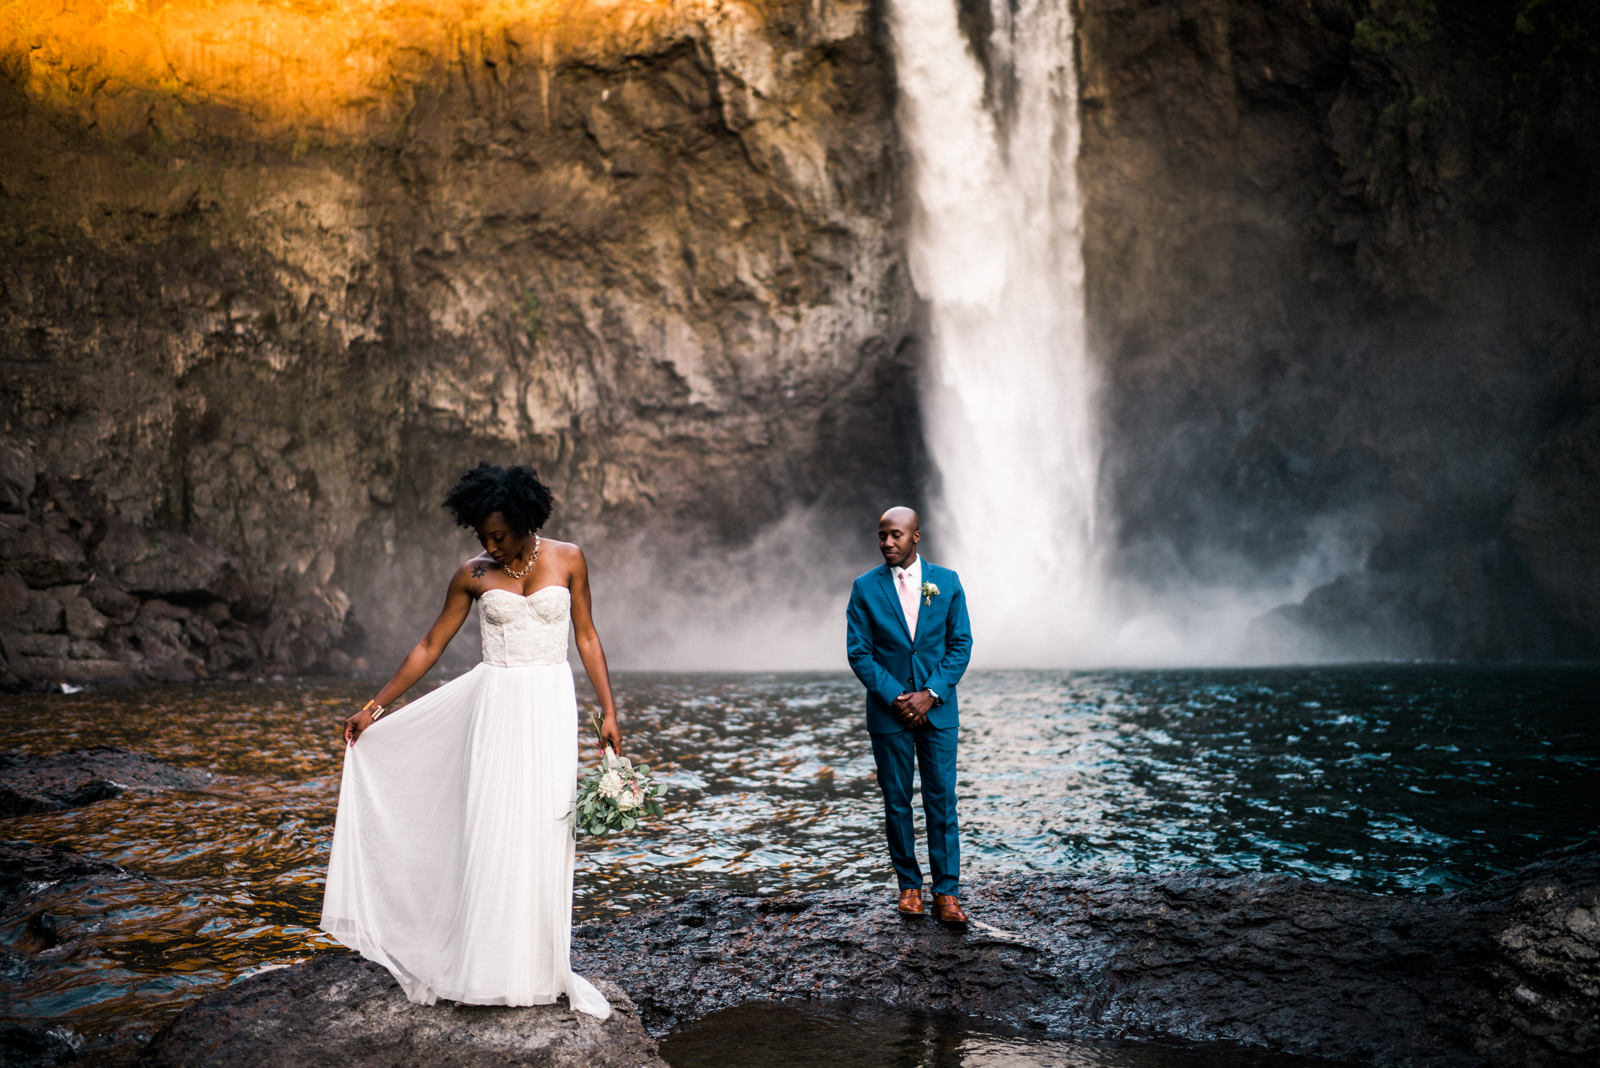 204-snoqualmie-falls-elopement-by-best-washington-elopement-photographer-ryan-flynn.jpg